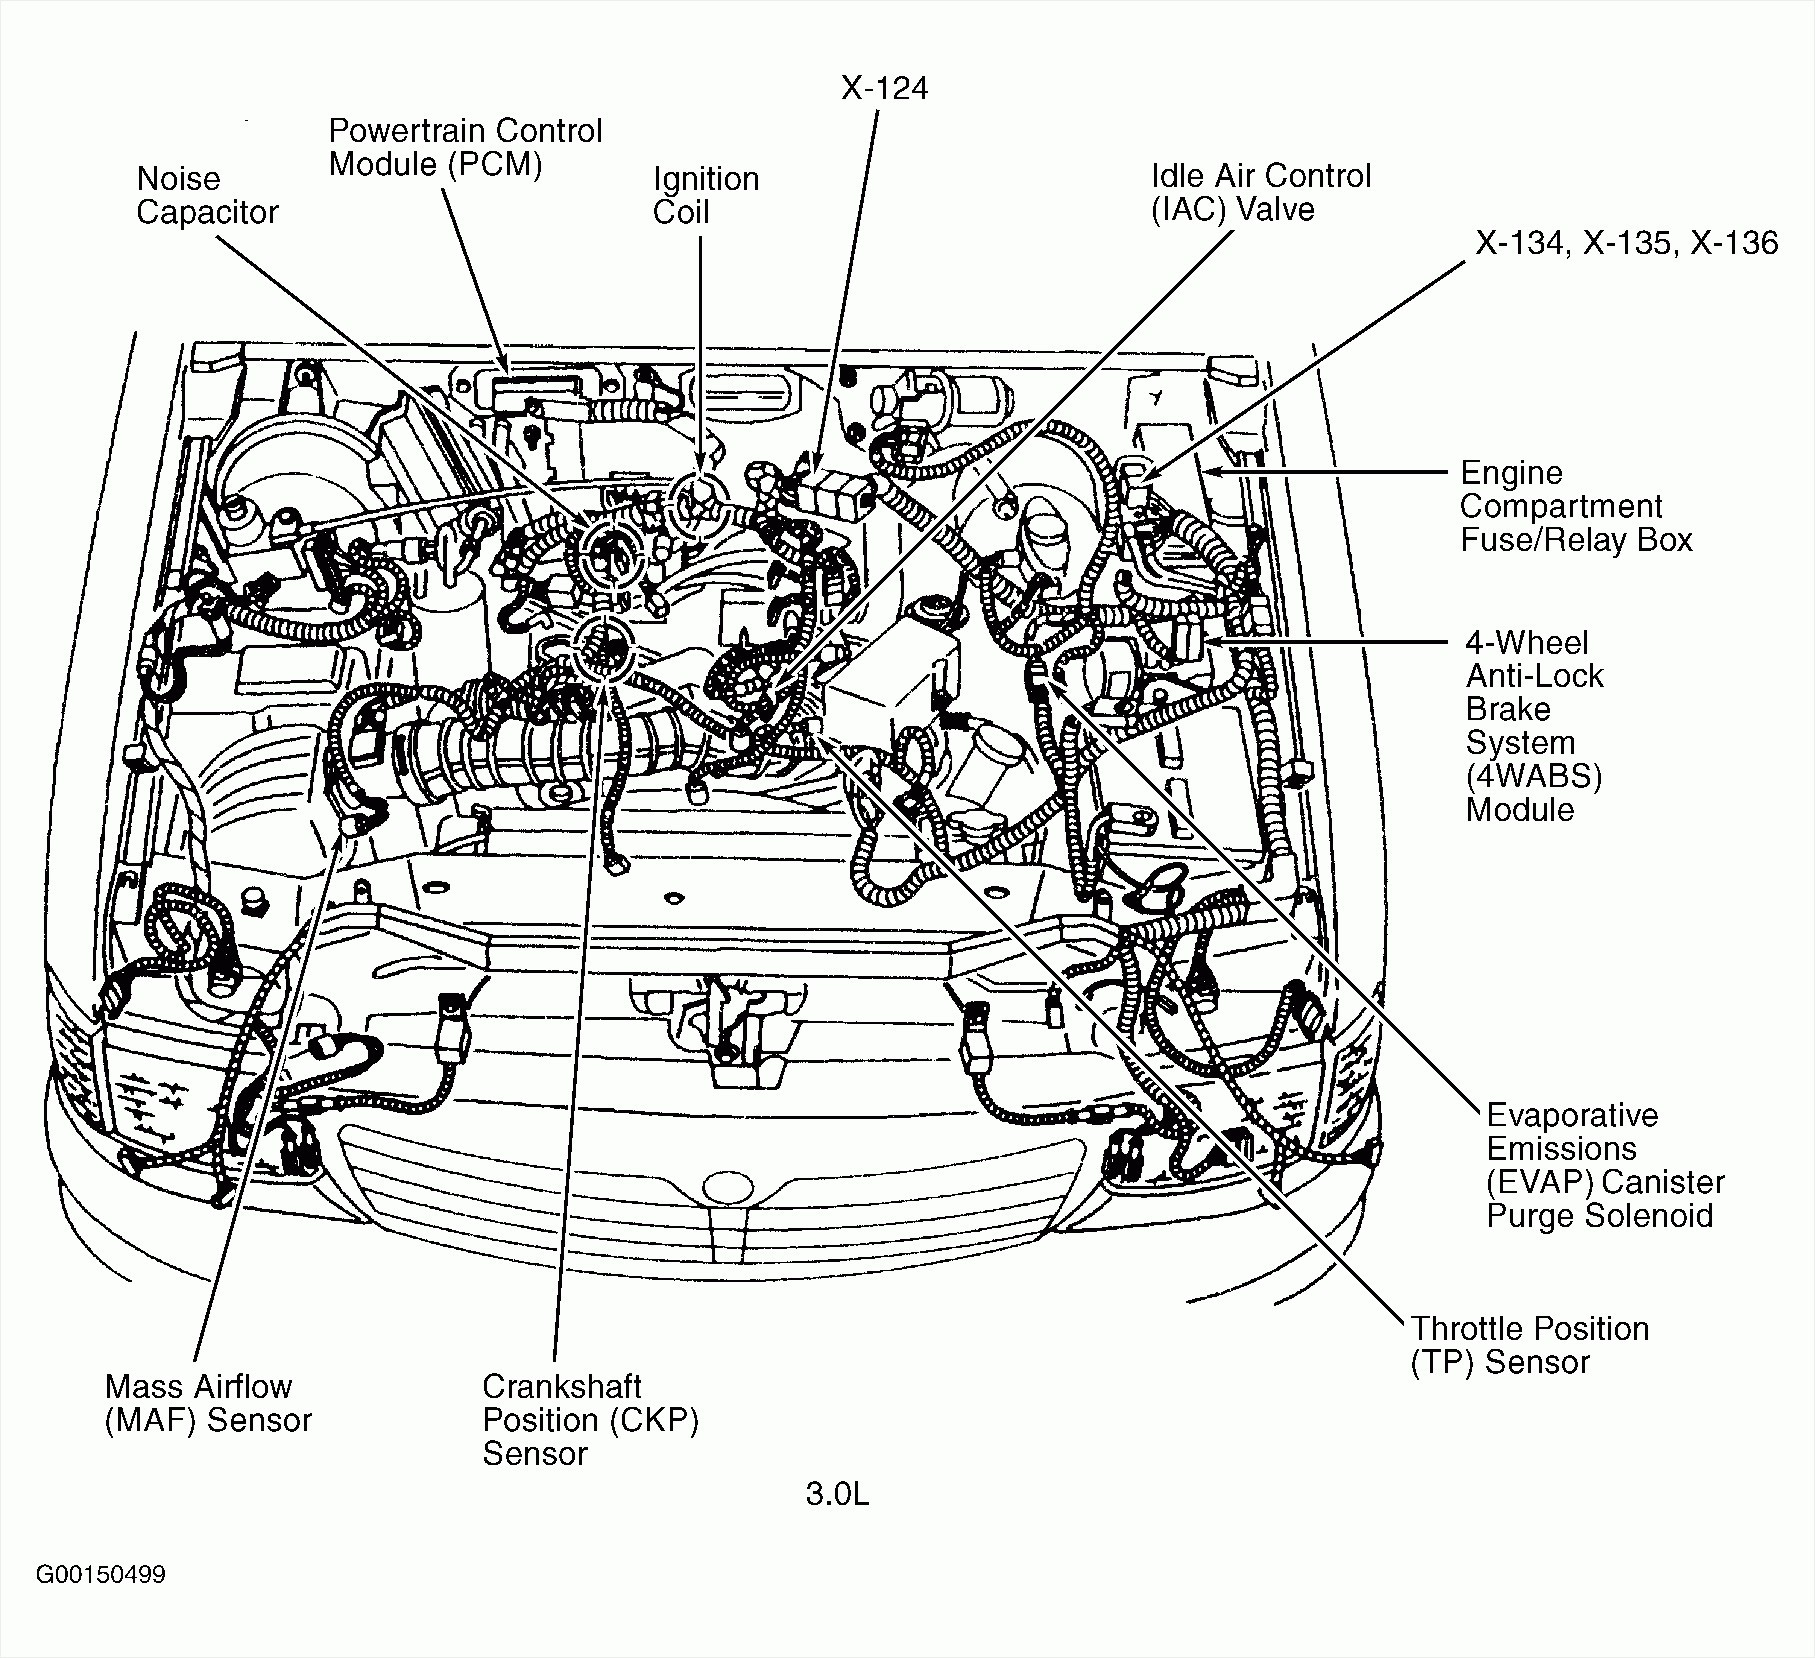 2002 mustang v6 engine diagrams